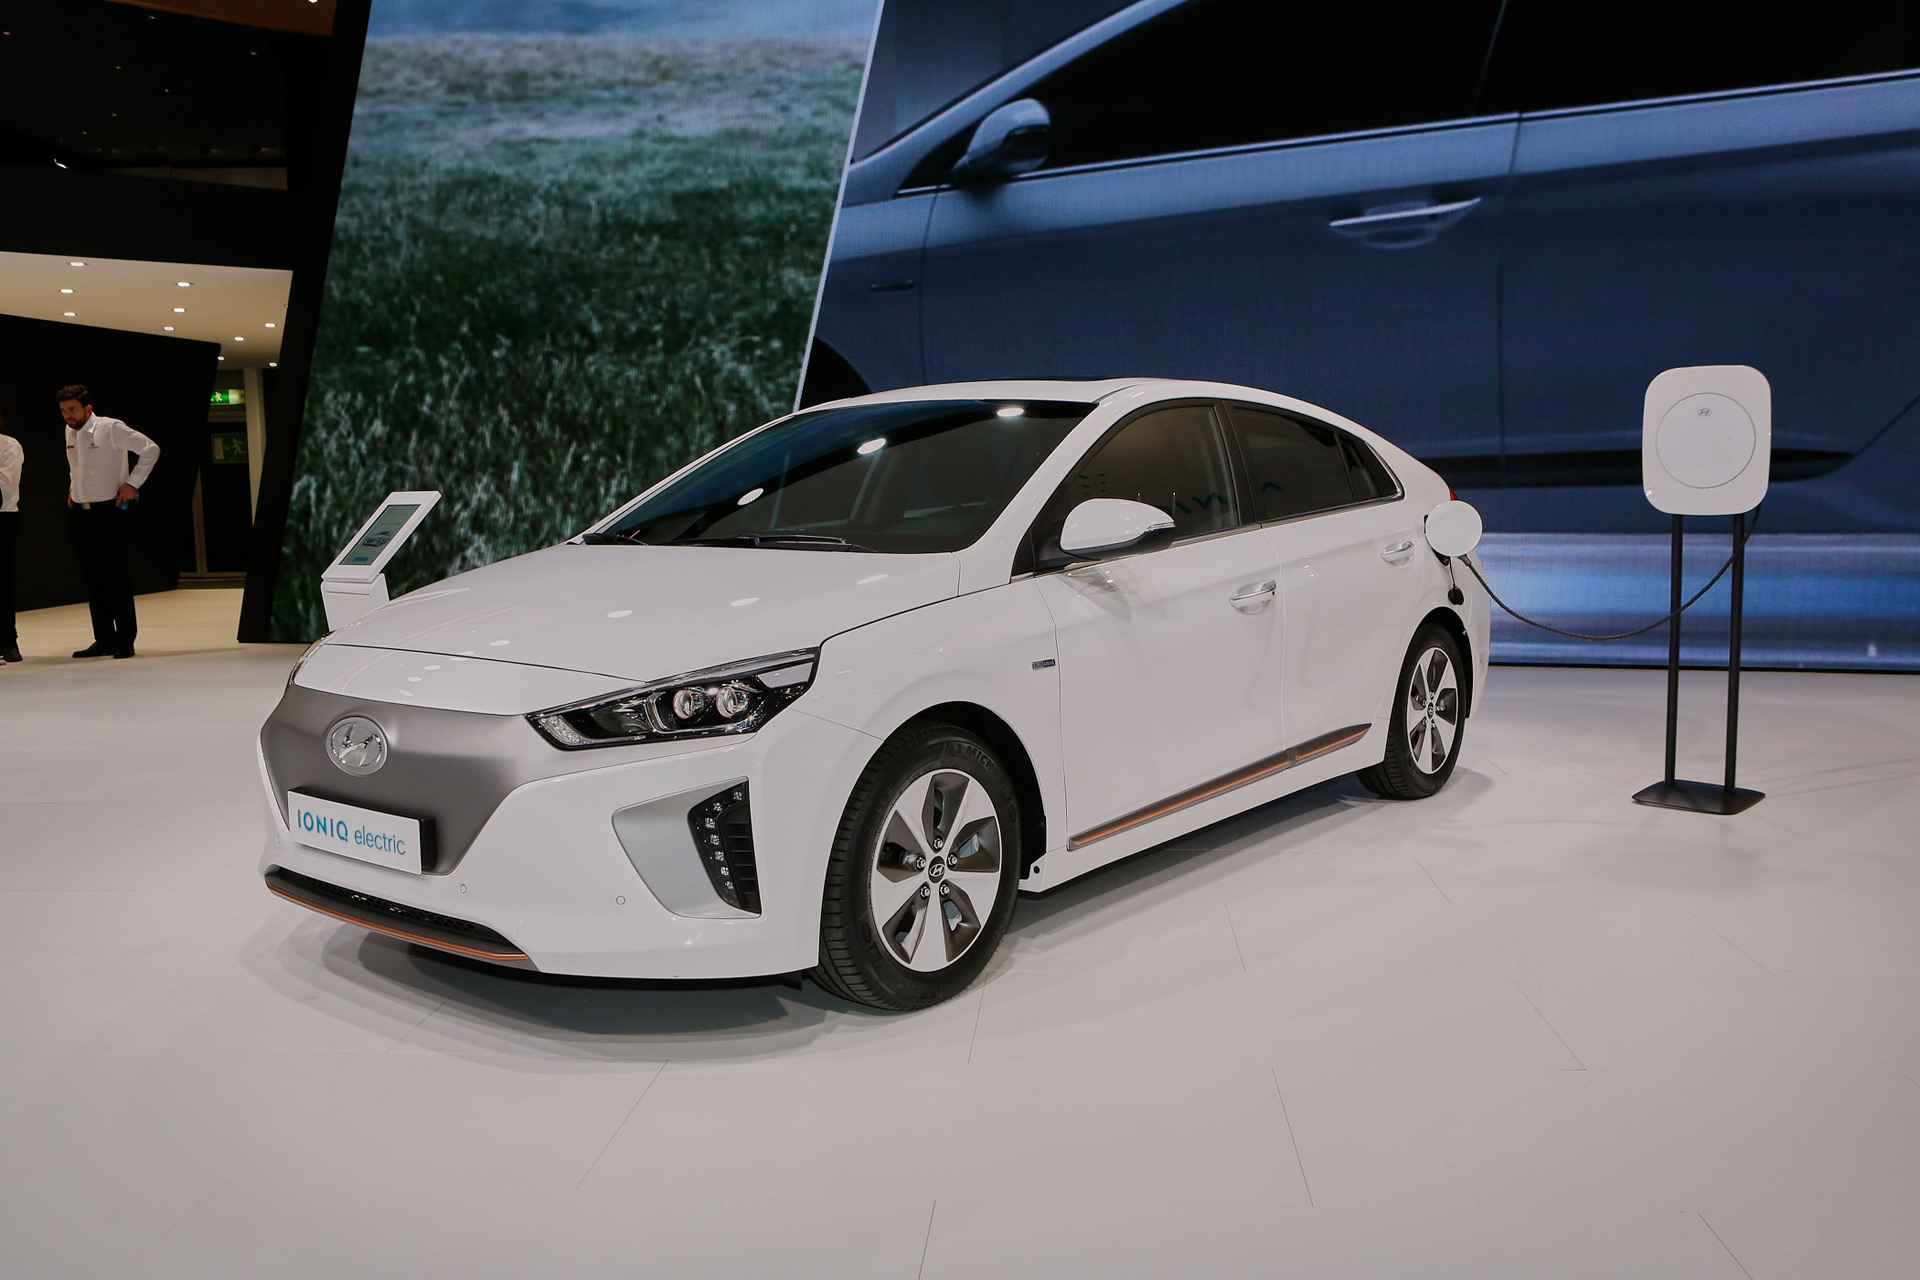 2017 hyundai ioniq electric to offer 110 miles of range company. Black Bedroom Furniture Sets. Home Design Ideas